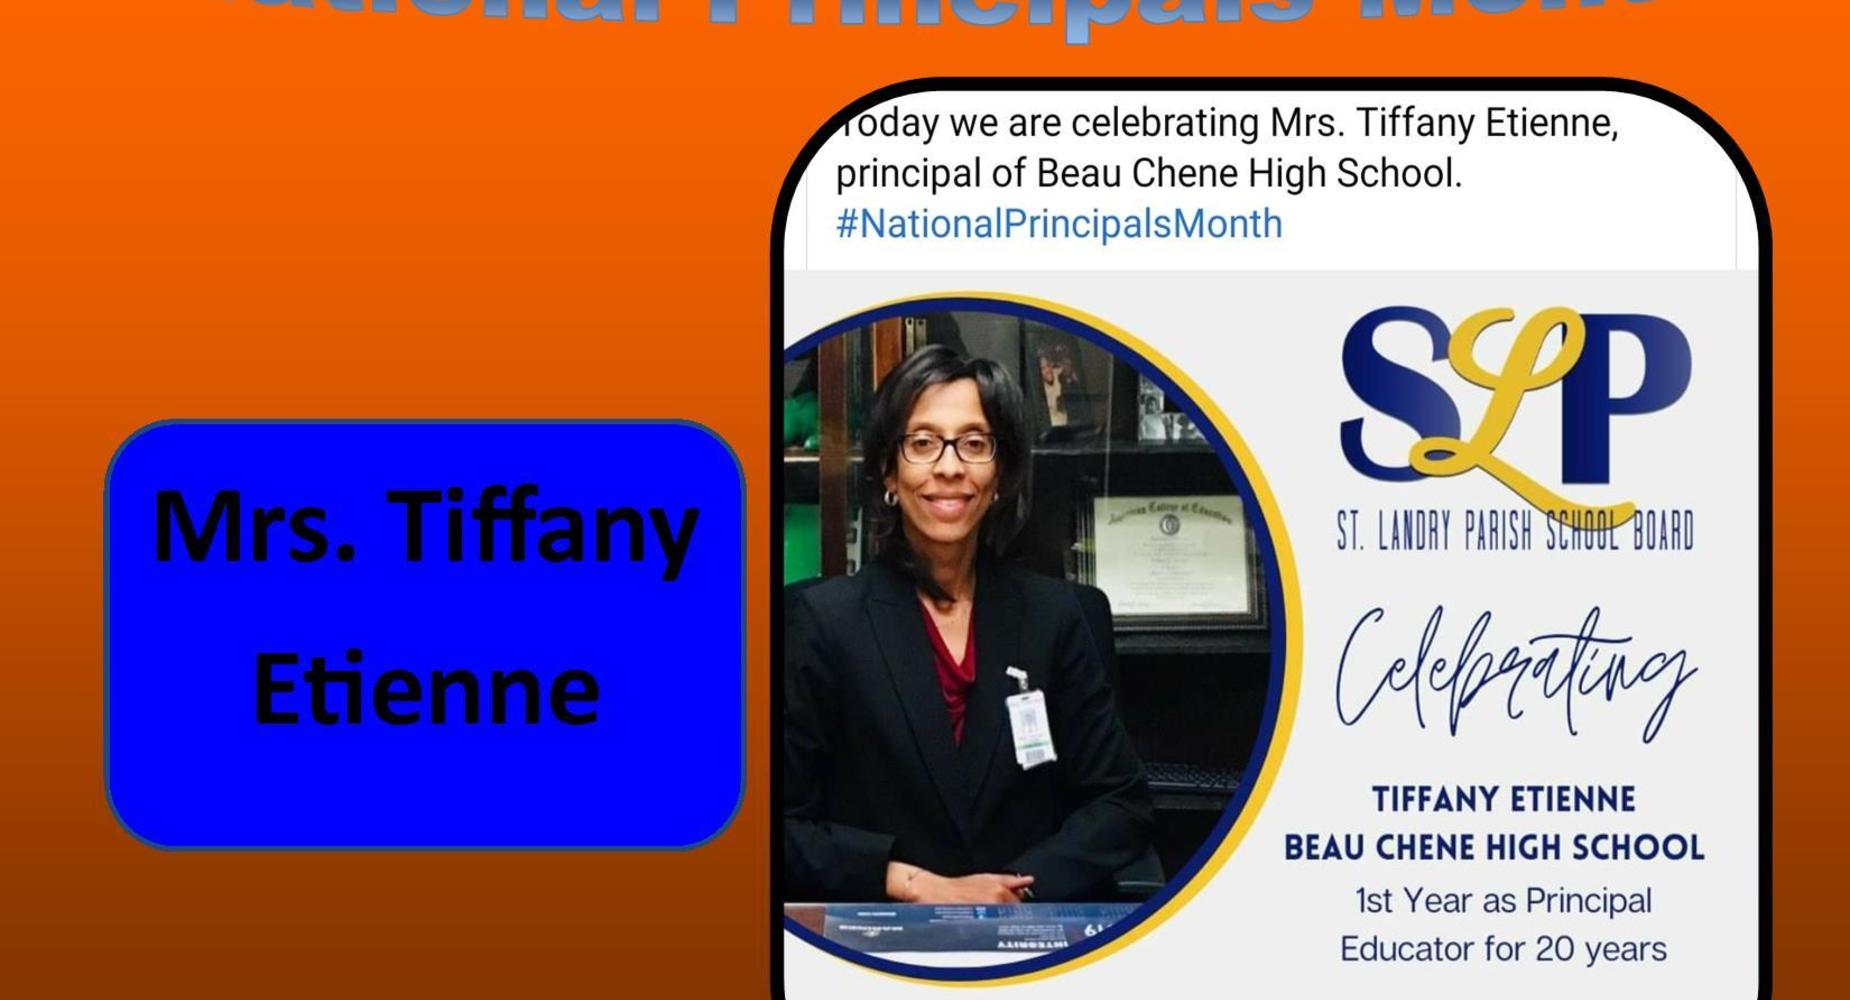 National Principals Month - Mrs. Tiffany Etienne - 2020-2021